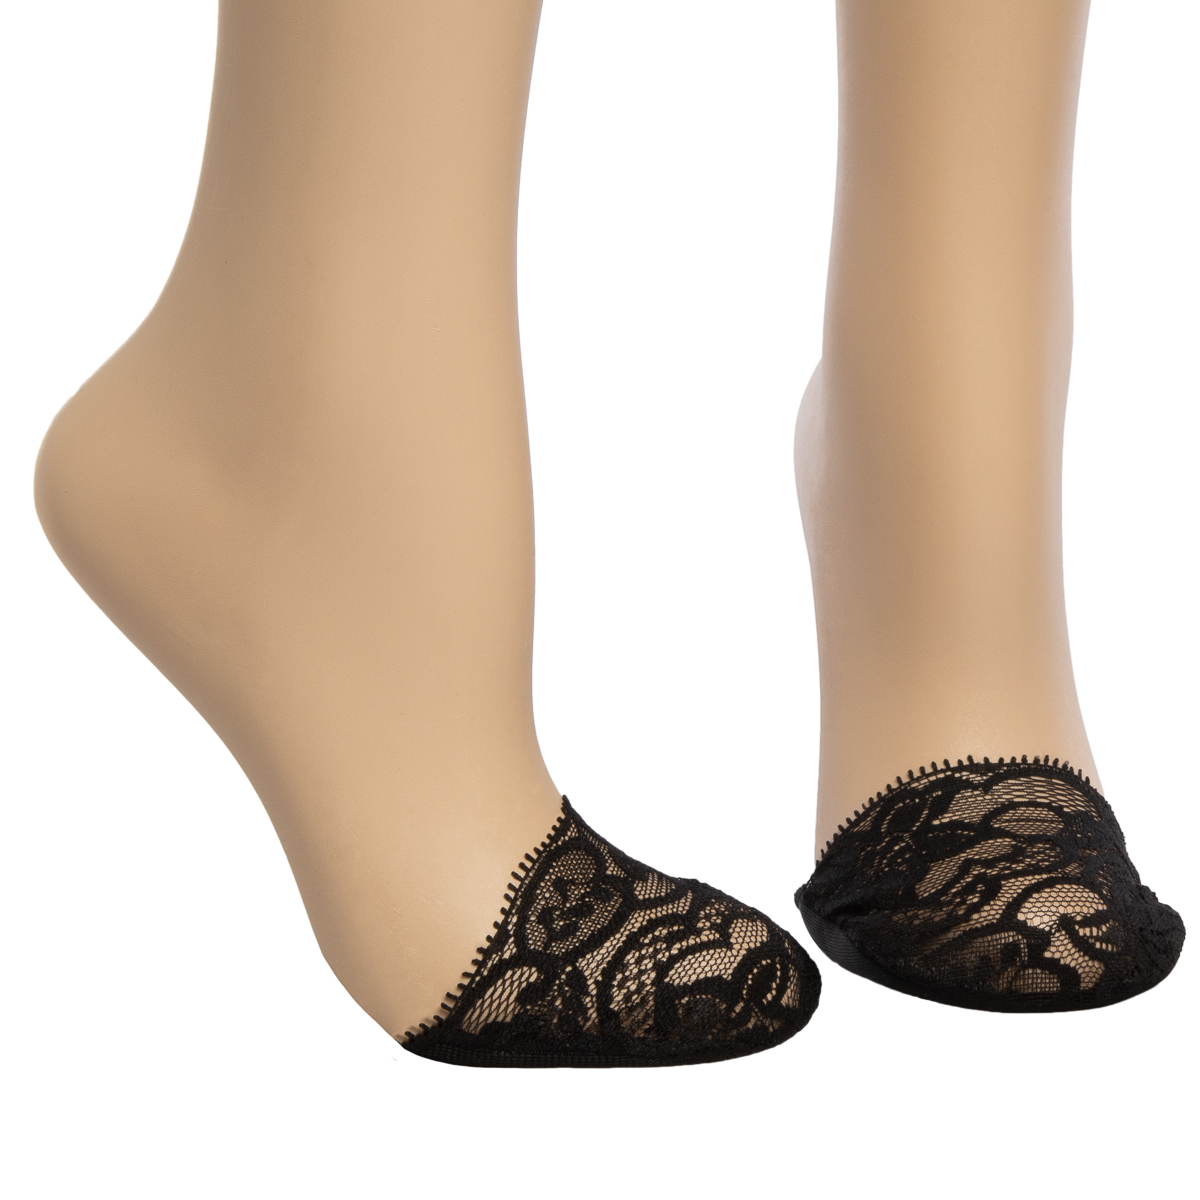 6pk-Appleseed-039-s-Womens-Toe-Cover-No-Show-Liner-Socks-Nylon-Lace-Non-Slip-Footie thumbnail 18